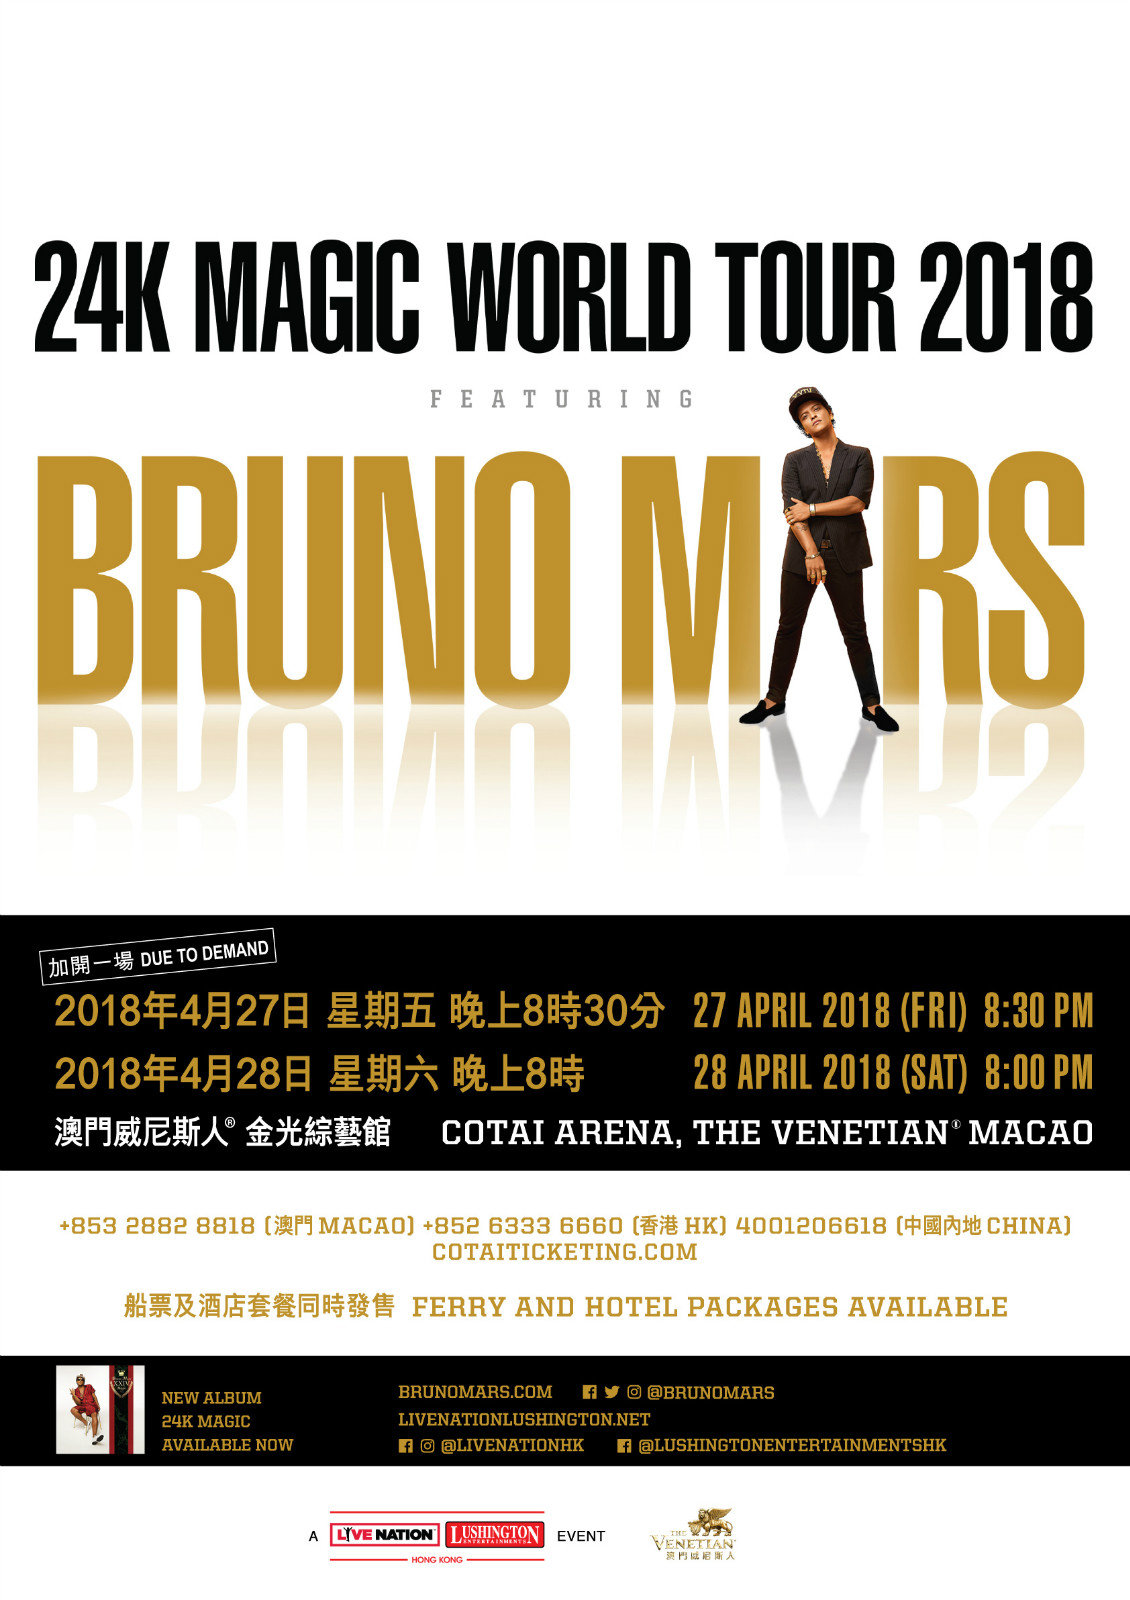 BRUNO MARS 《24K MAGIC WORLD TOUR 2018》澳門站海報